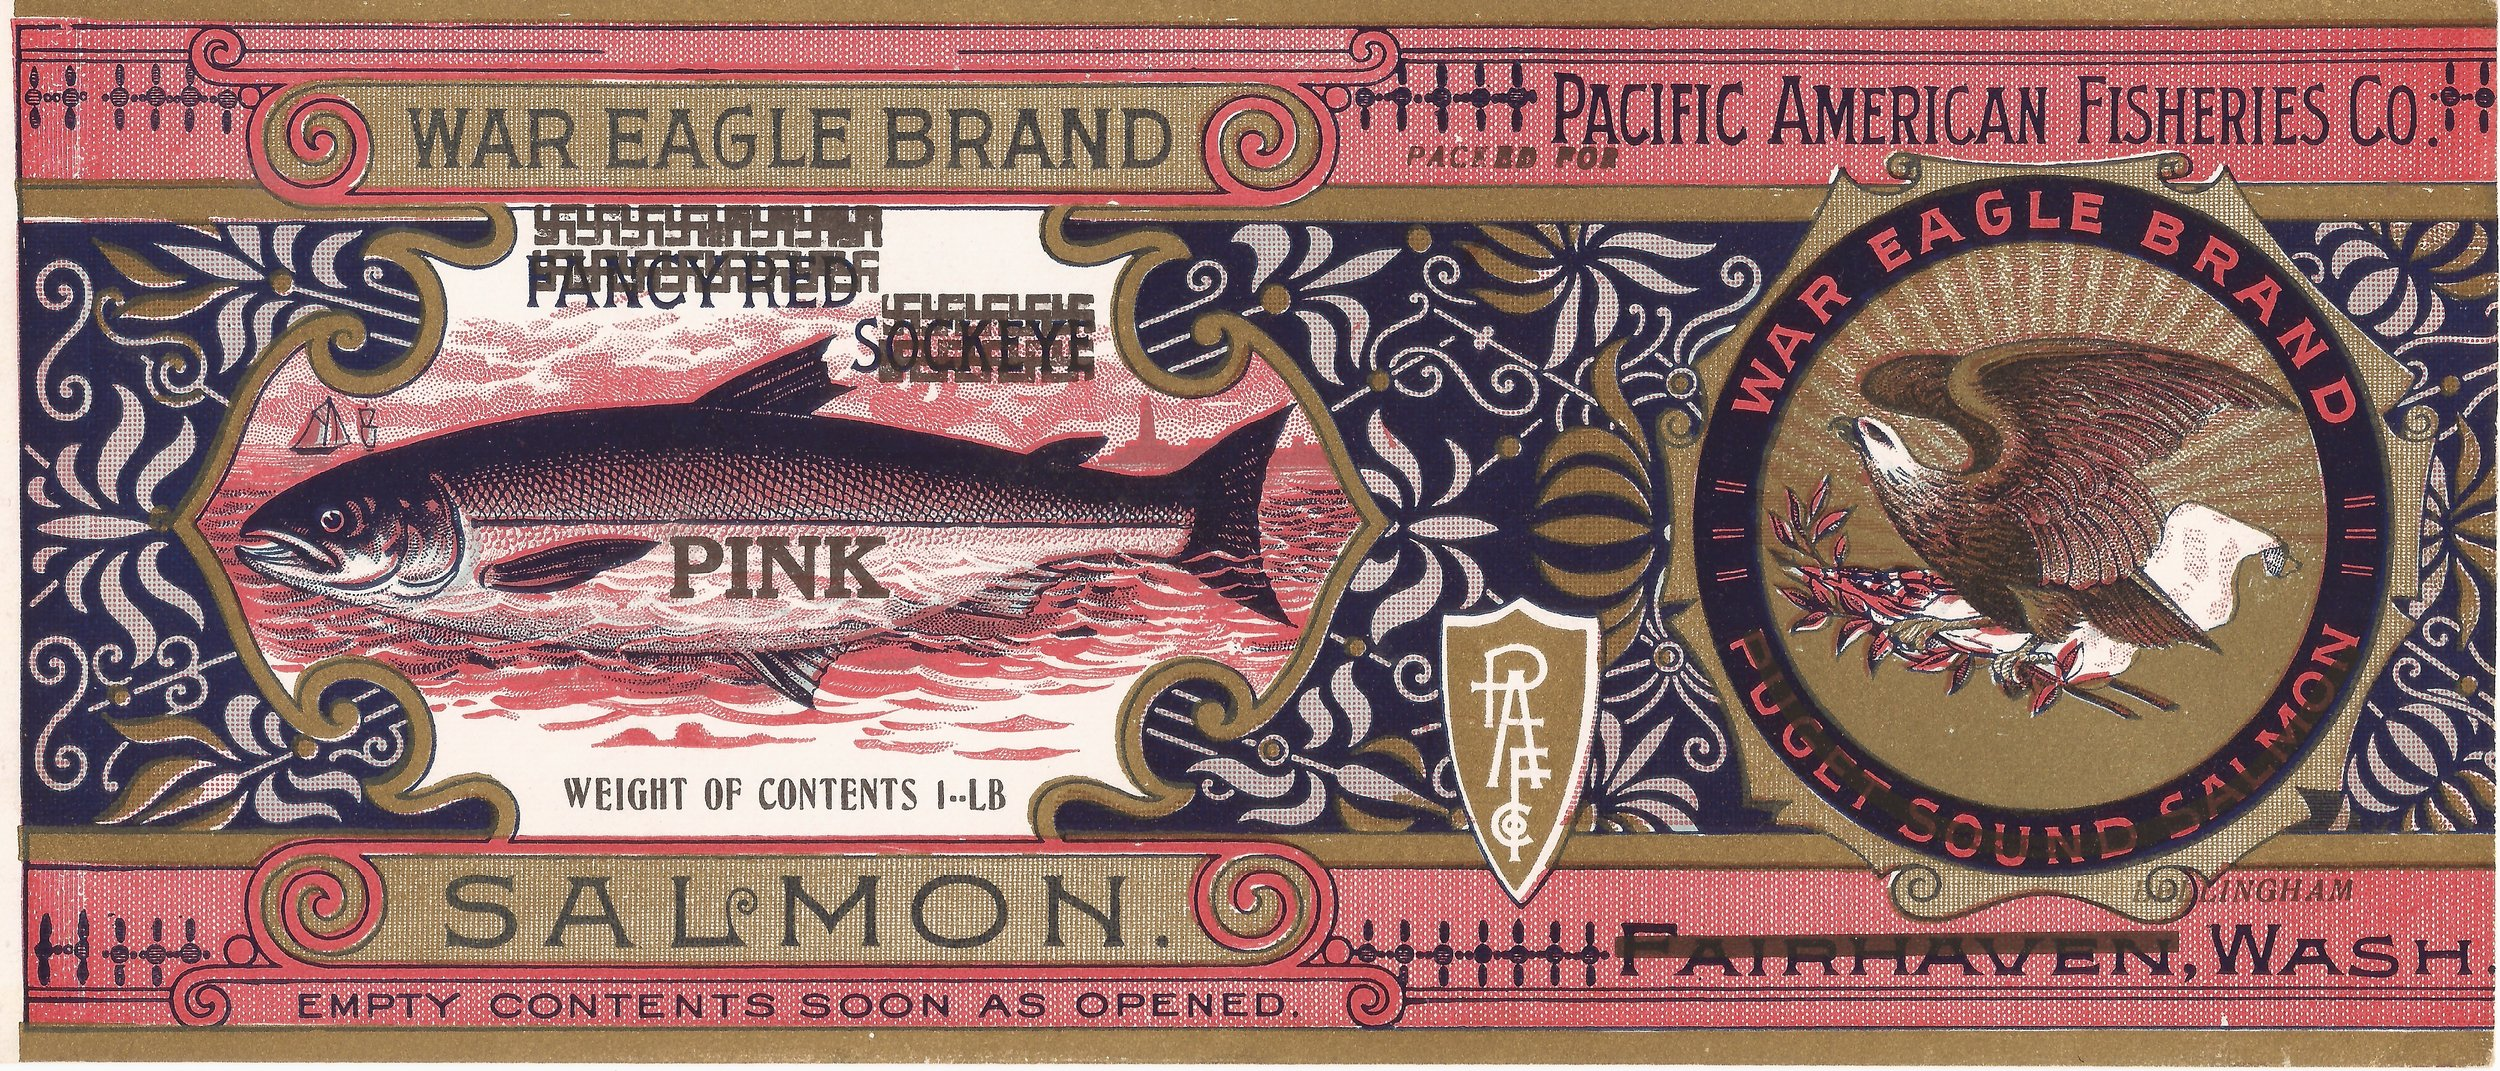 The War Eagle label was printed for cans of reds in Fairhaven, but was used for cans of pinks after Fairhaven was absorbed into Bellingham. From the collection of Karen Hofstad.